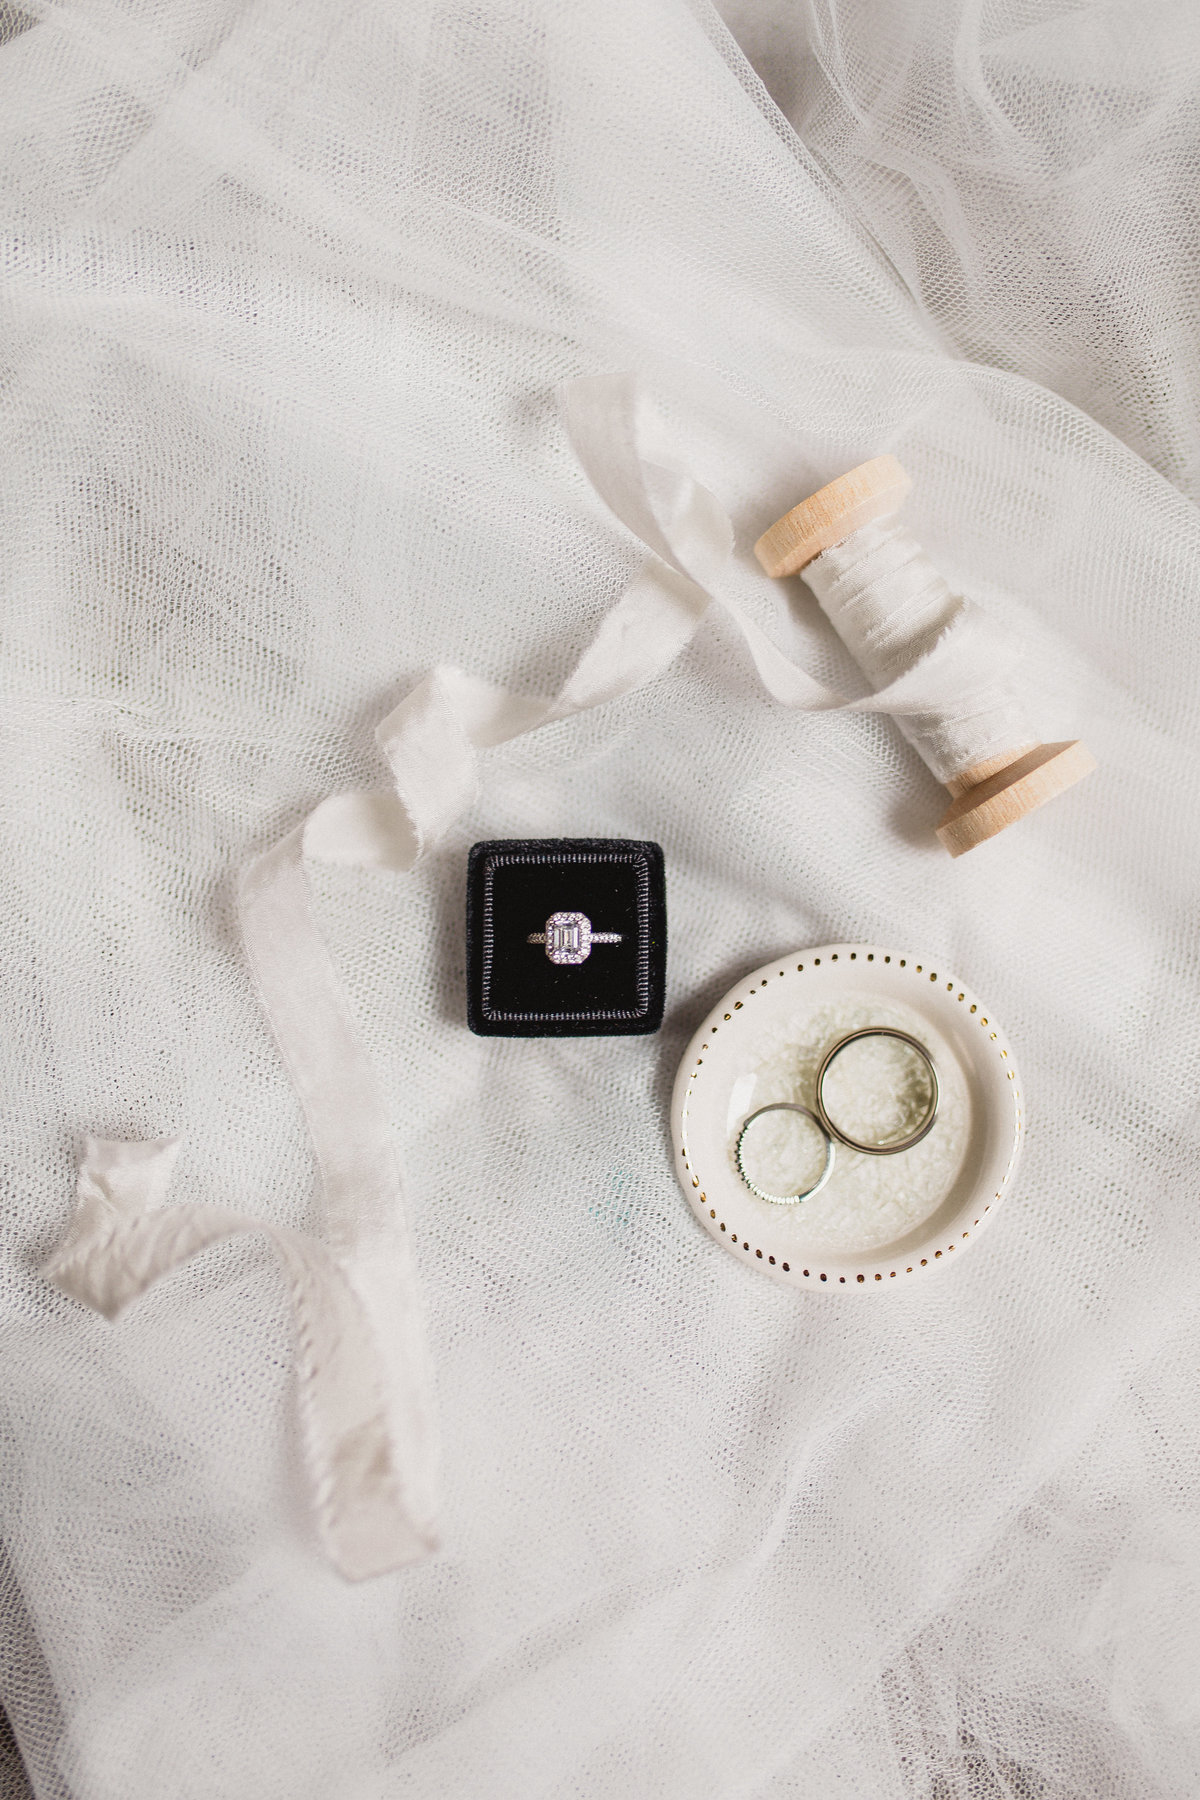 WeddingGallery_2019_WeeThreeSparrowsPhotography-372